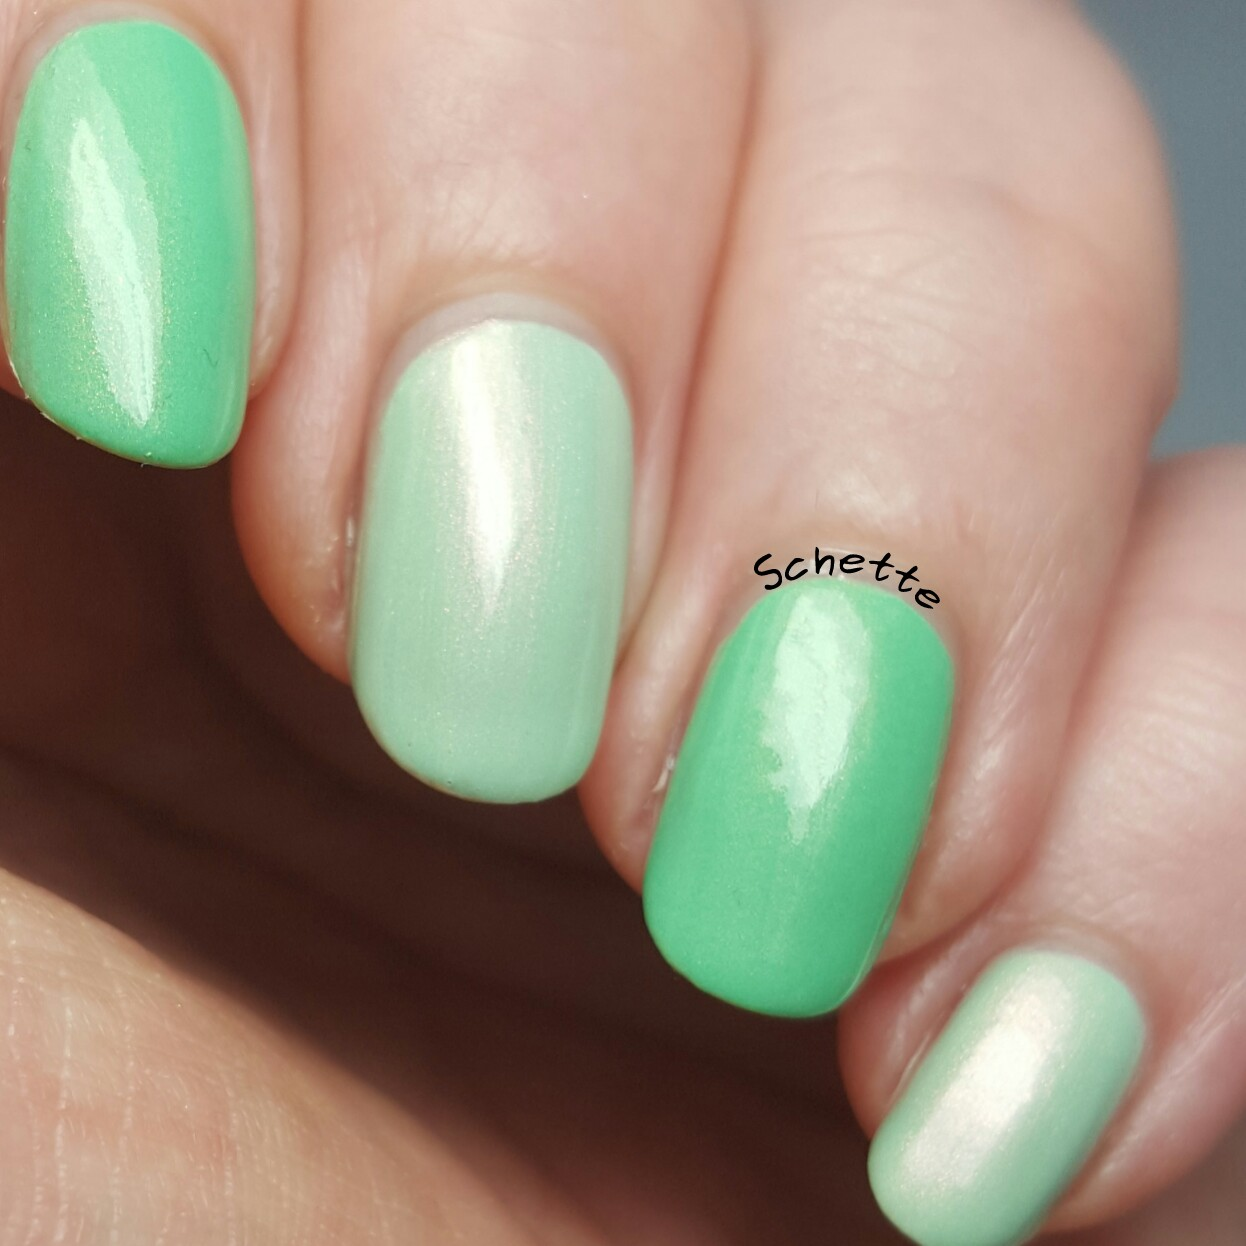 Enchanted Polish : Comparison January and March 2016 with YSL Spring